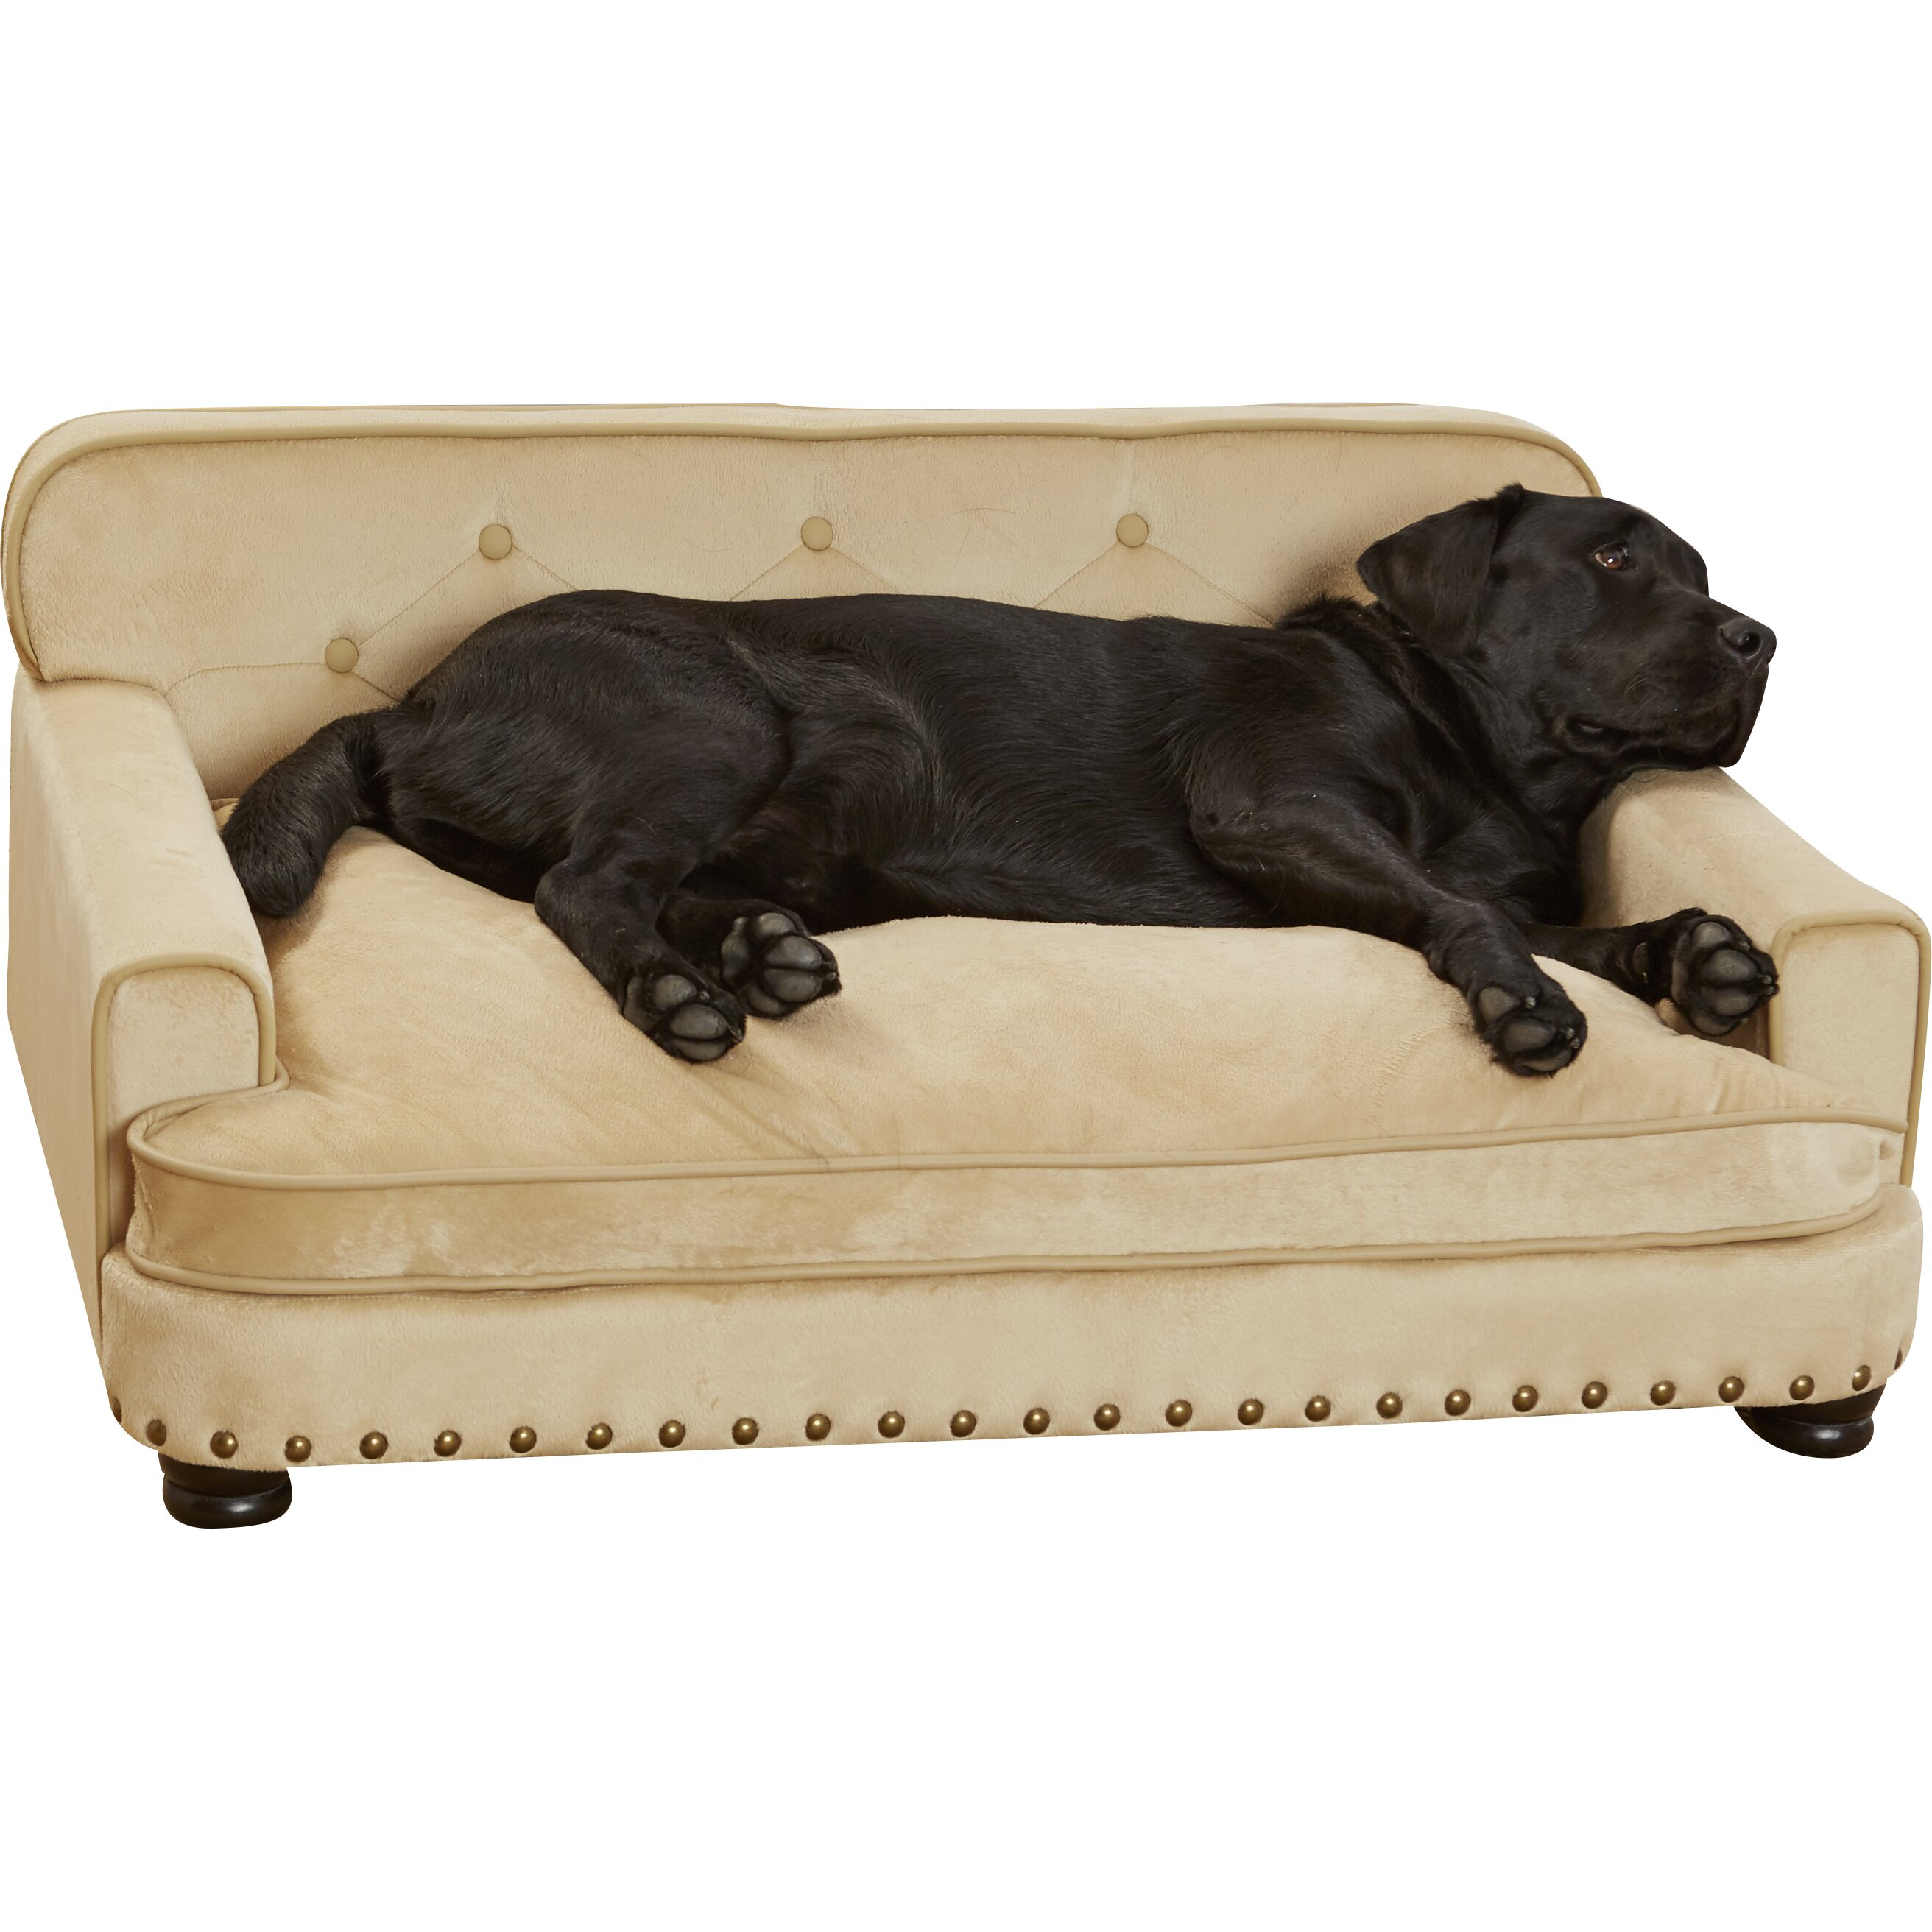 Enchanted Home Dog Bed